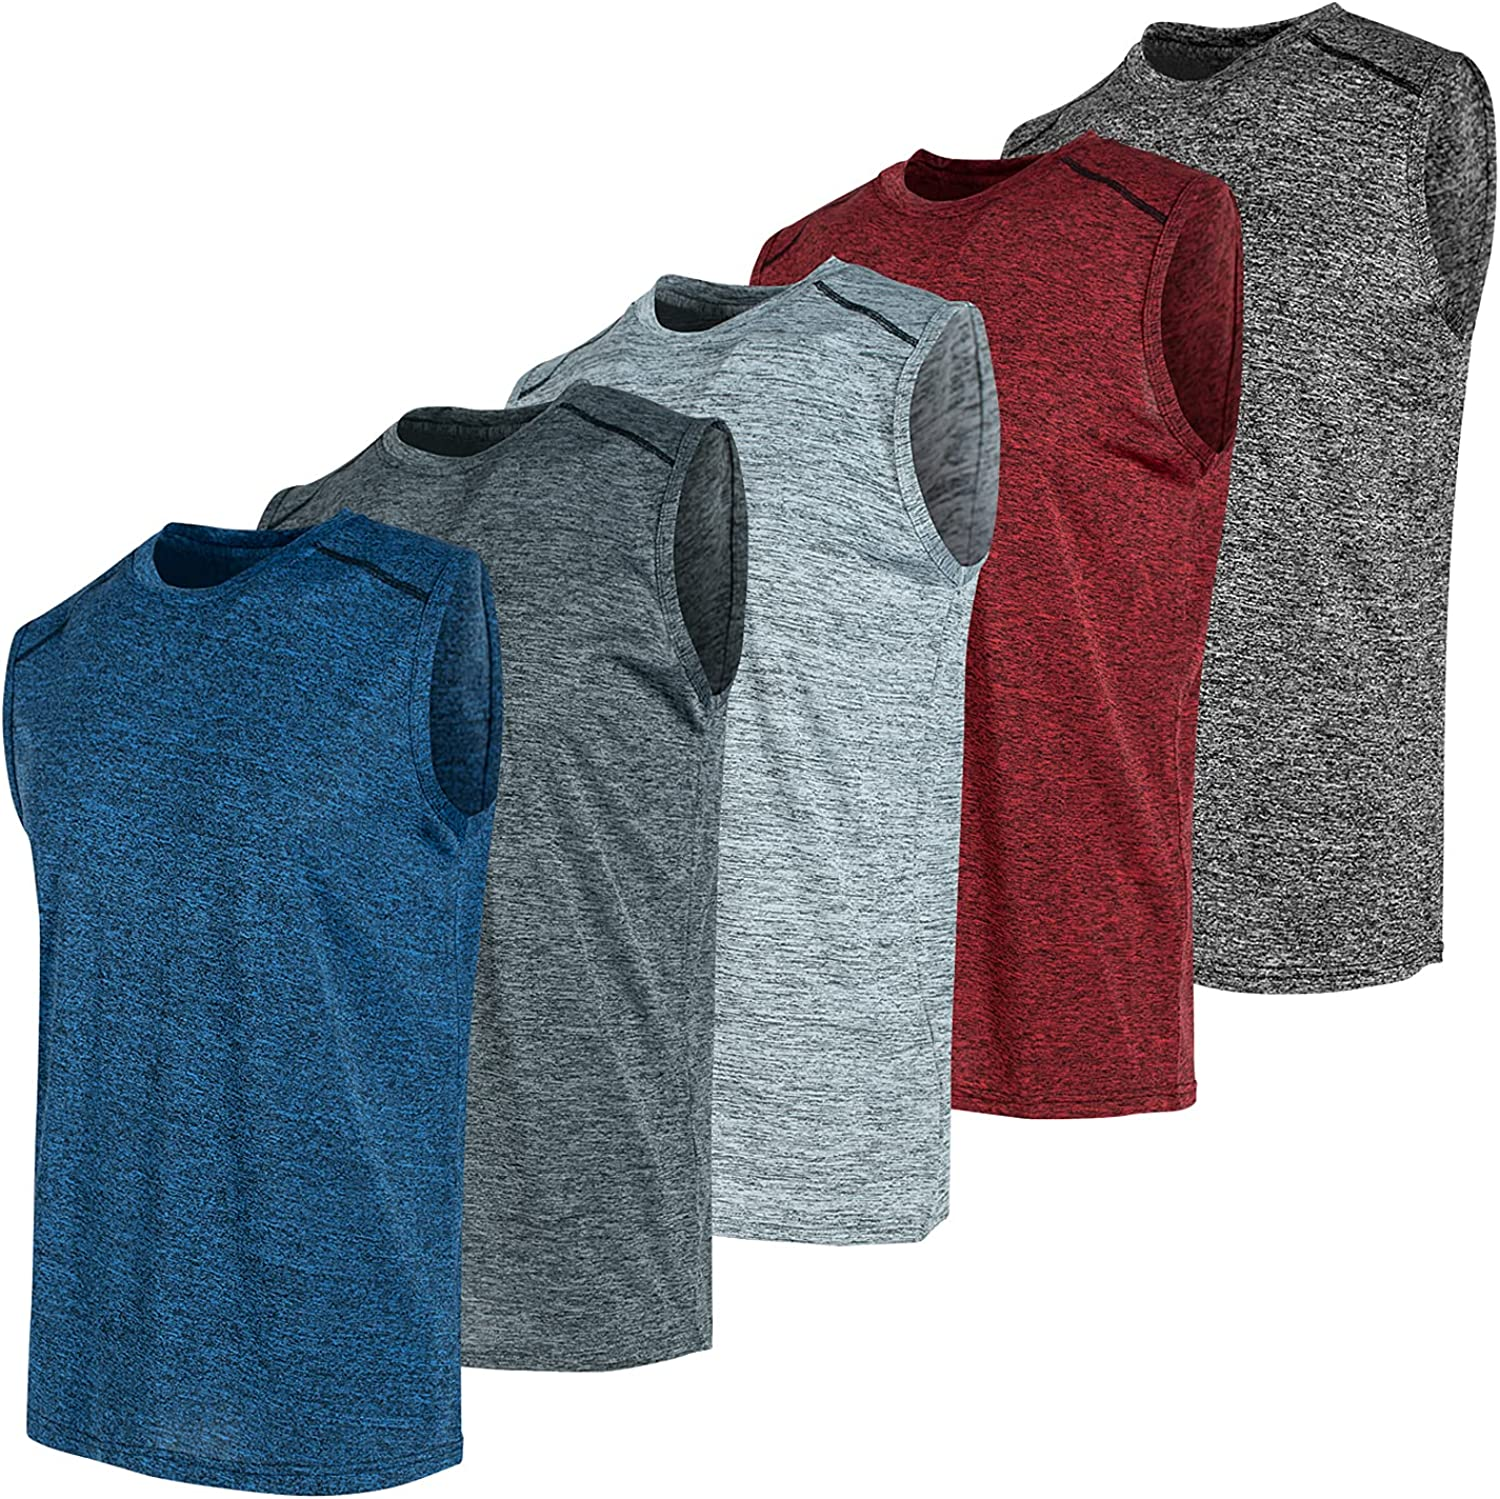 Pack of 5 Limited time for free shipping Dry Fit Mens Tank Shirts Tops Sleeveless Me Minneapolis Mall for Muscle